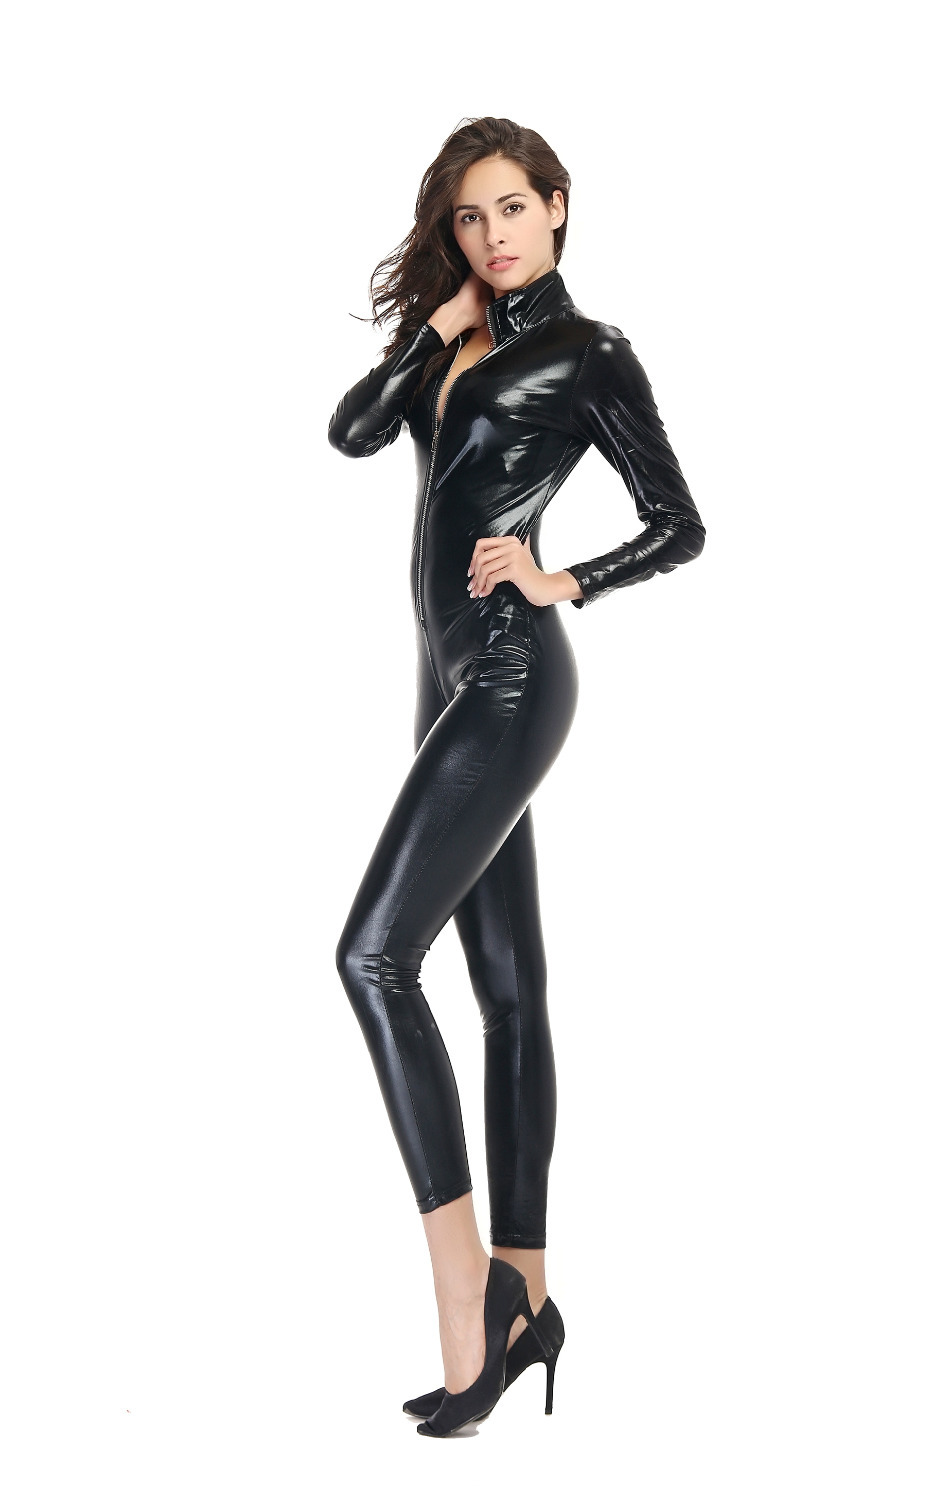 costume Sexy Elegant Locomotive Suit sexy spandex jumpsuits Patent Leather  High Quality Fashion Black jumpsuit XTN048 on Aliexpress.com | Alibaba Group